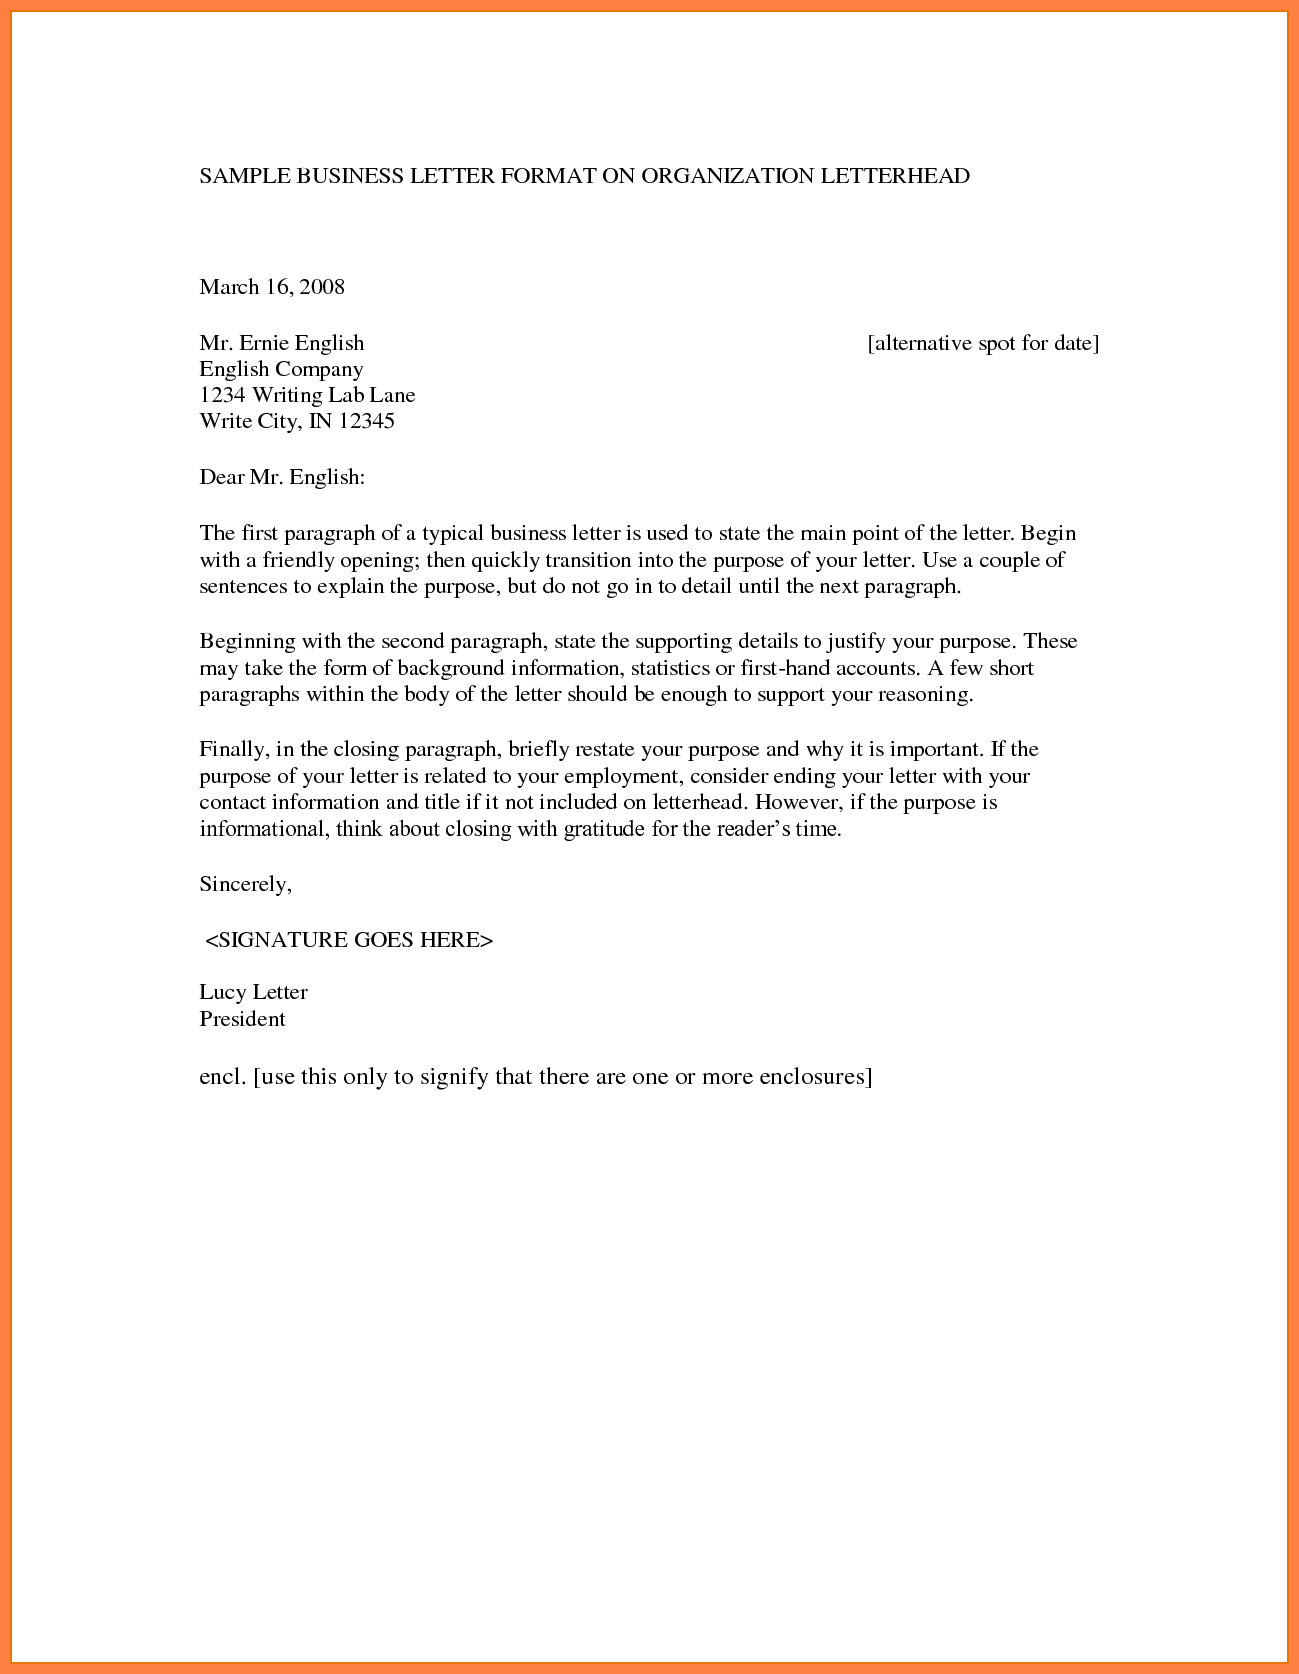 Business Letter Format With Letterhead Rmat Free Templates Amp